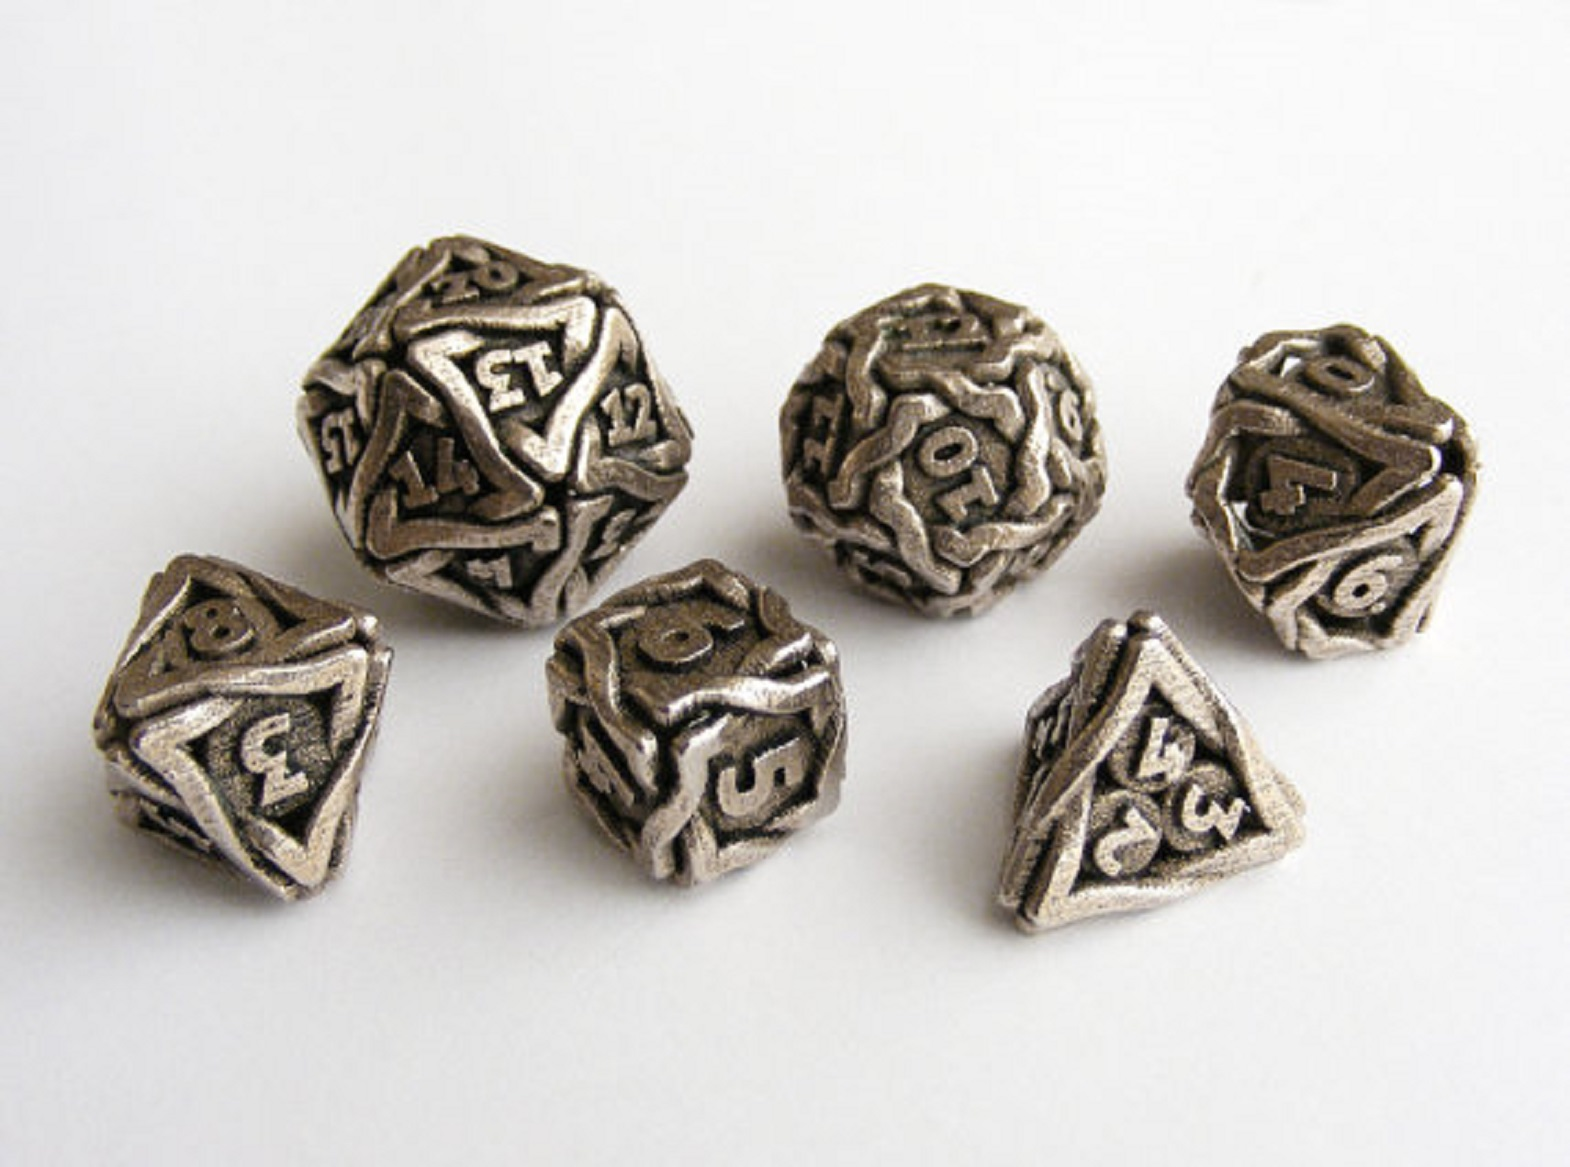 Set Of 7 Polyhedral Metal Dice Aged Mithral Norse Foundry Rpg Pathfinder Dwarven Bo Ta Ny Shop Or perhaps individual dice besides d20s in metals? set of 7 polyhedral metal dice aged mithral norse foundry rpg pathfinder dwarven bo ta ny shop